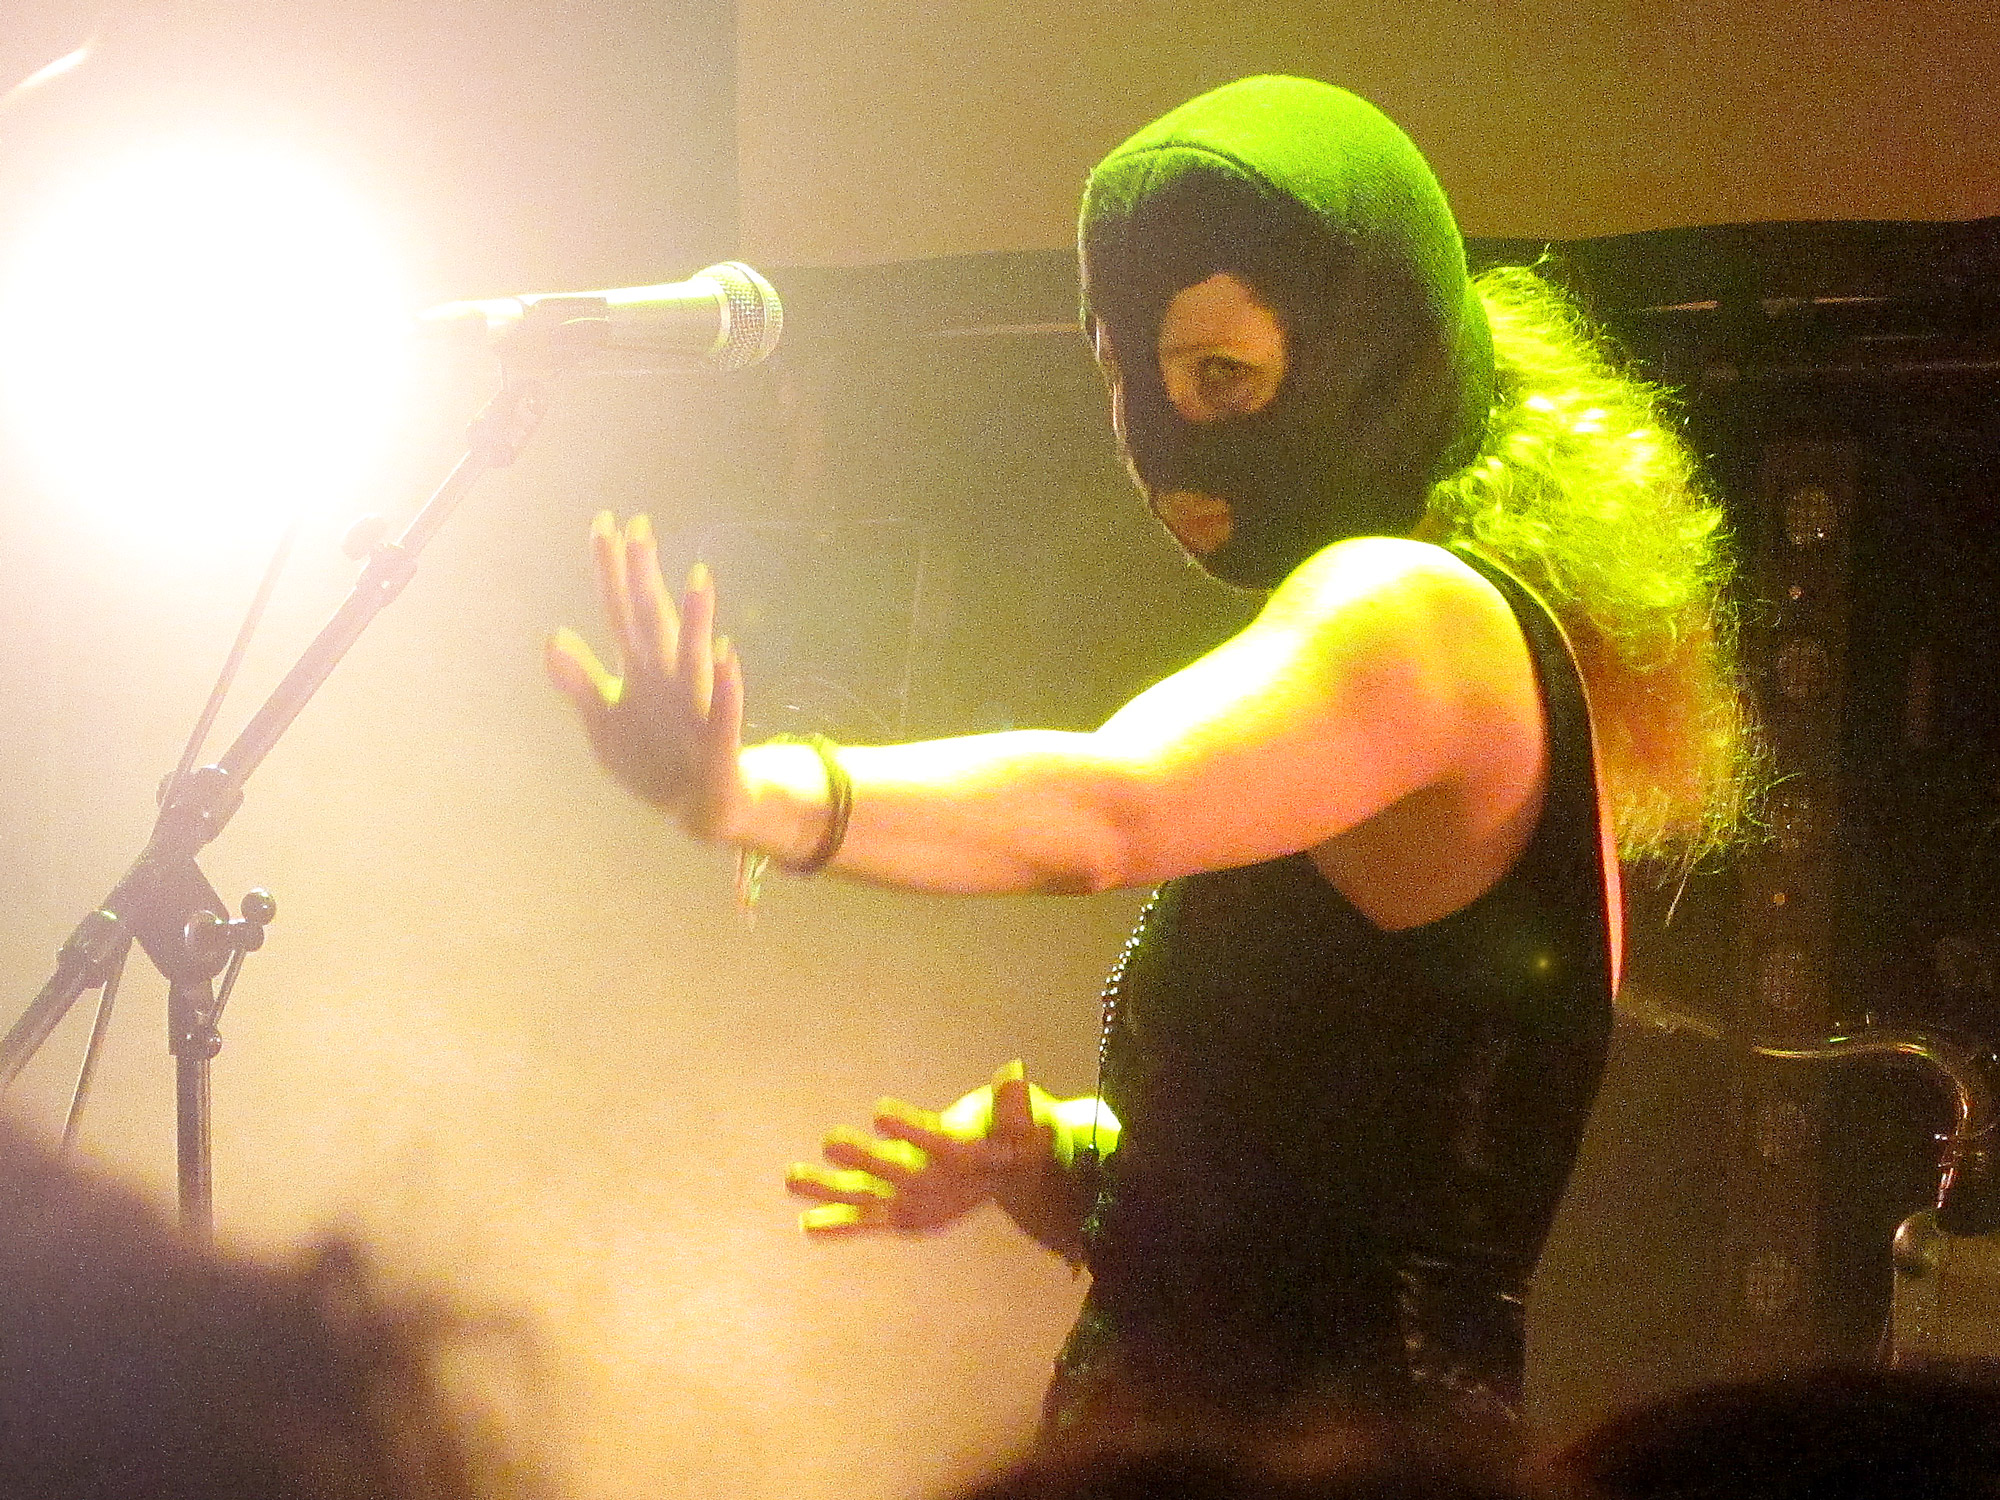 A woman dressed in a sleeveless top is dancing on a misty stage, She is wearing a green balaclava, her hair billowing out of the back.